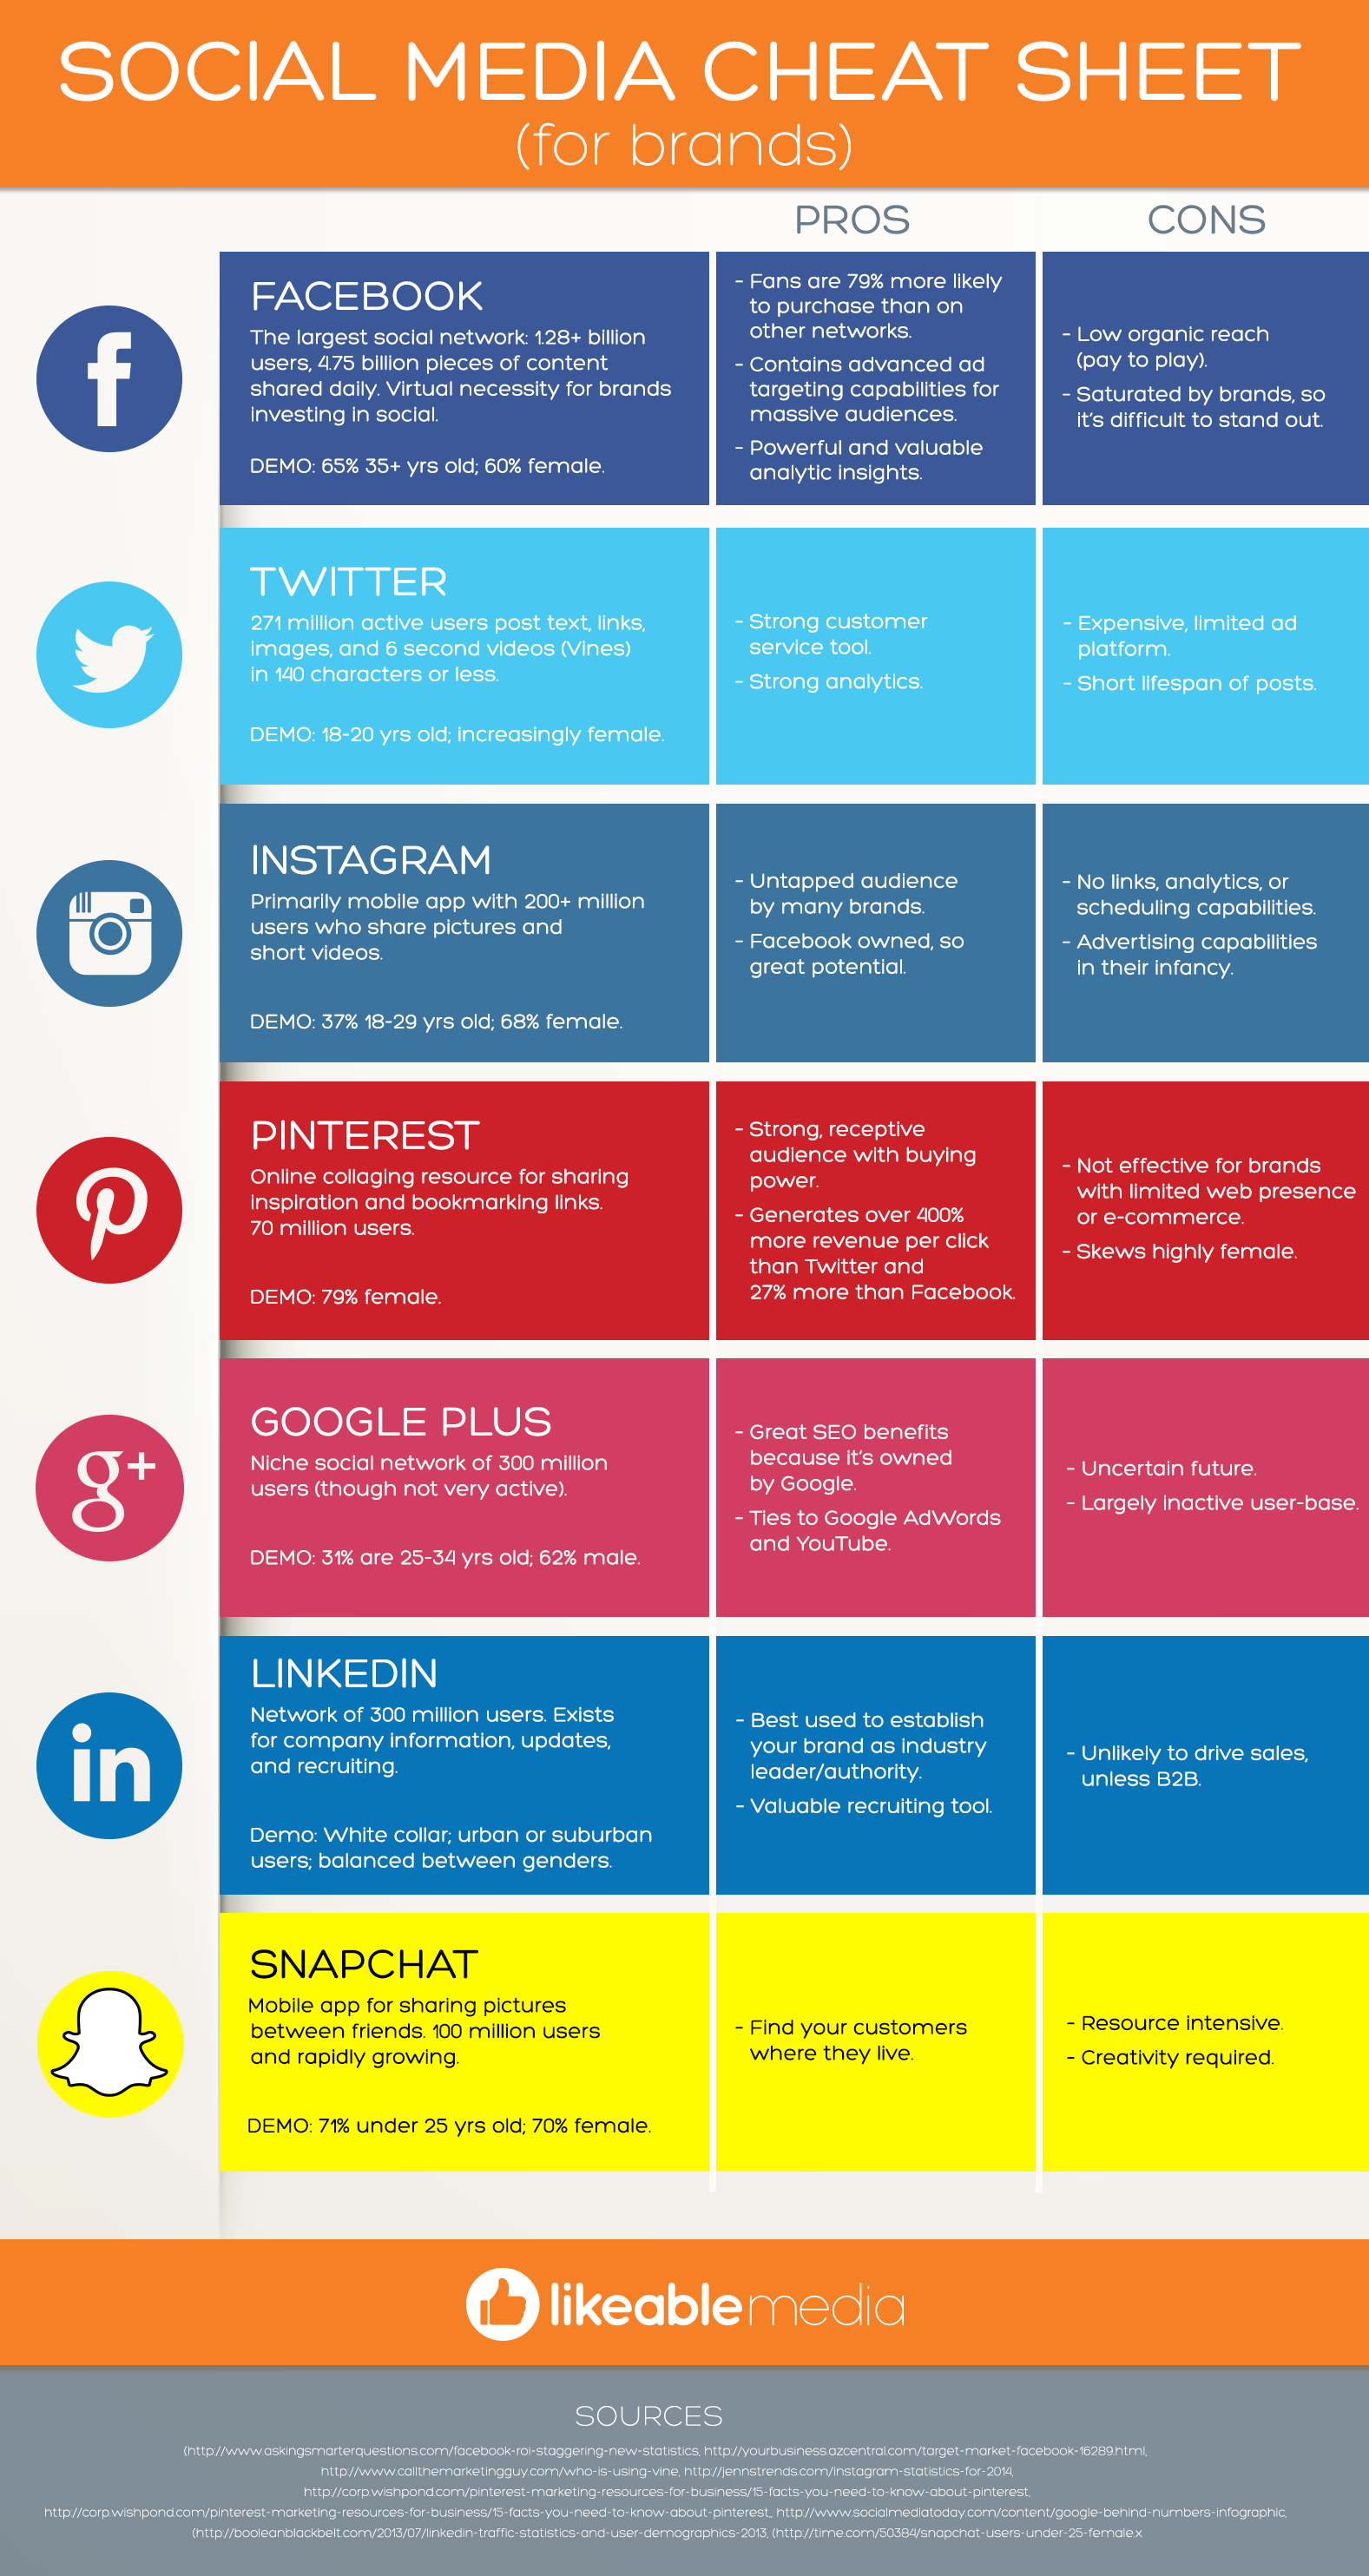 Social Media Cheat Sheet für Marken (Infografik) | xeit ...